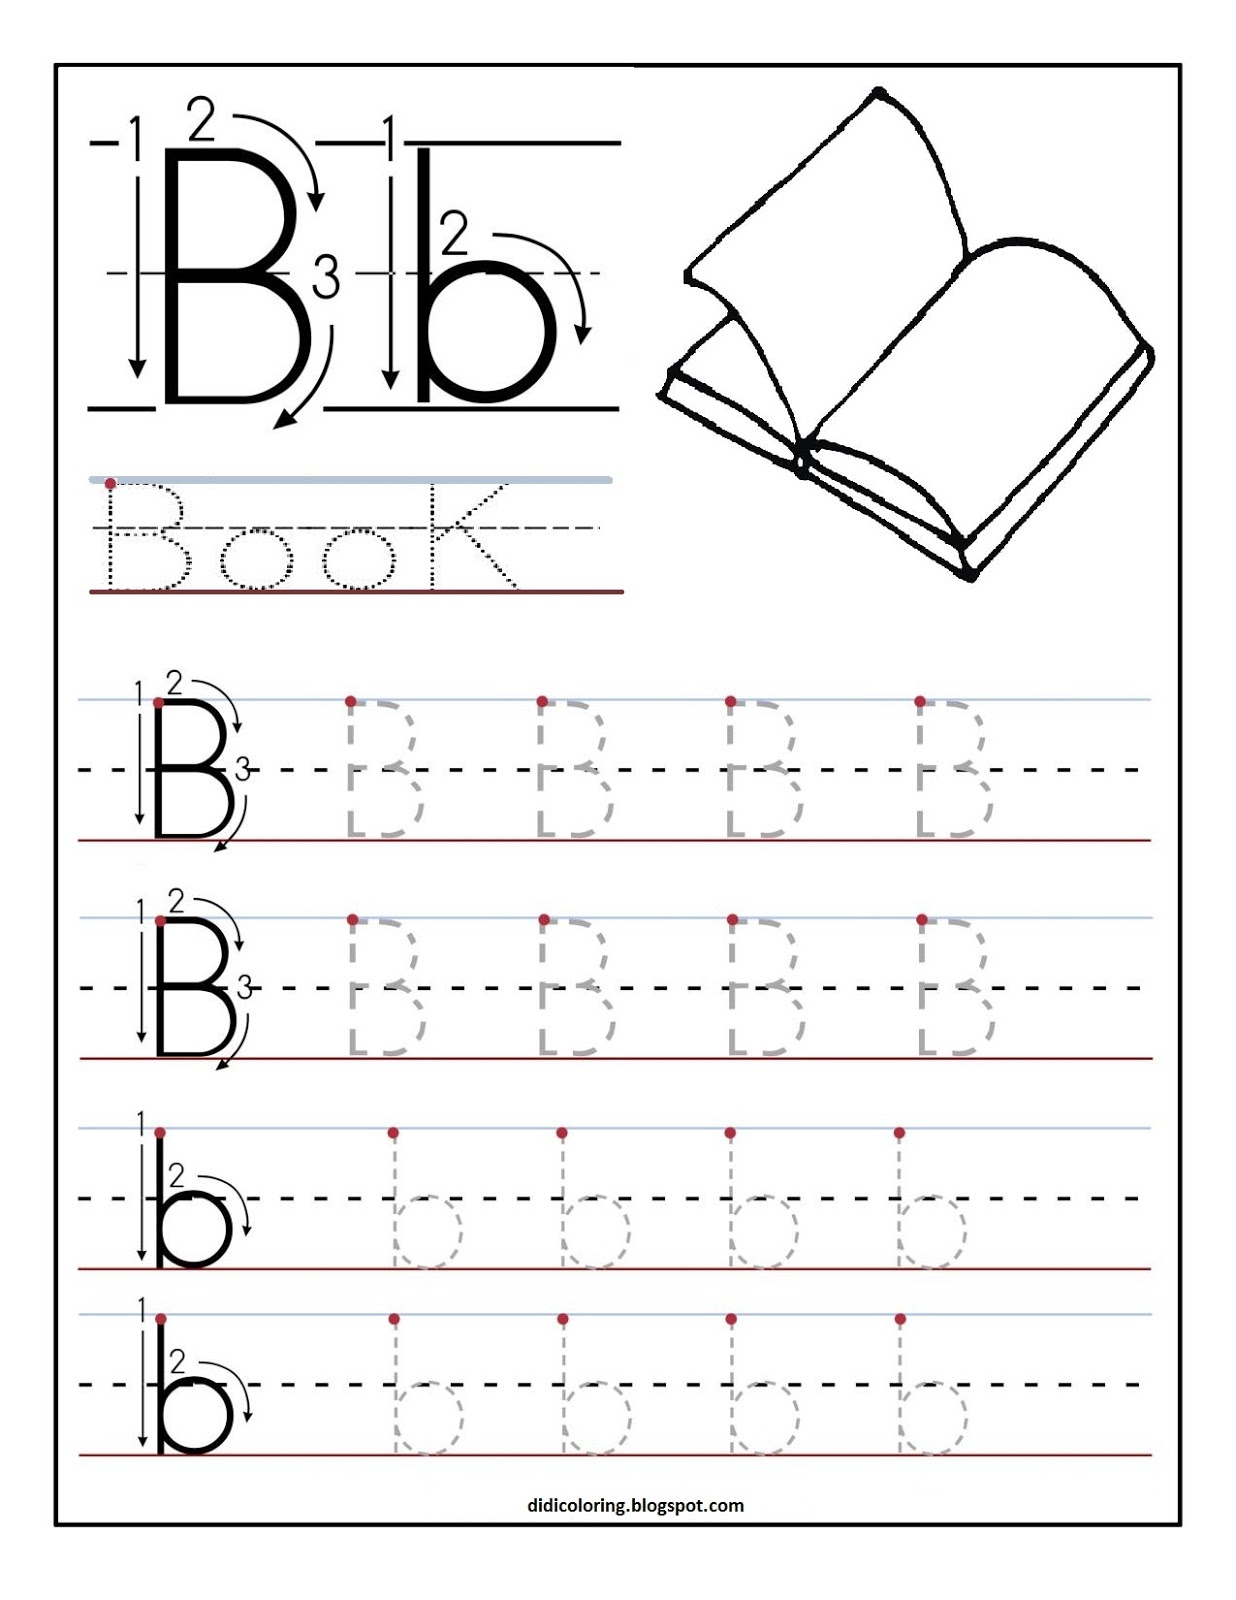 Learning To Write Worksheets For Kindergarten Versaldobip – Free Printable Worksheets for Kindergarten Writing